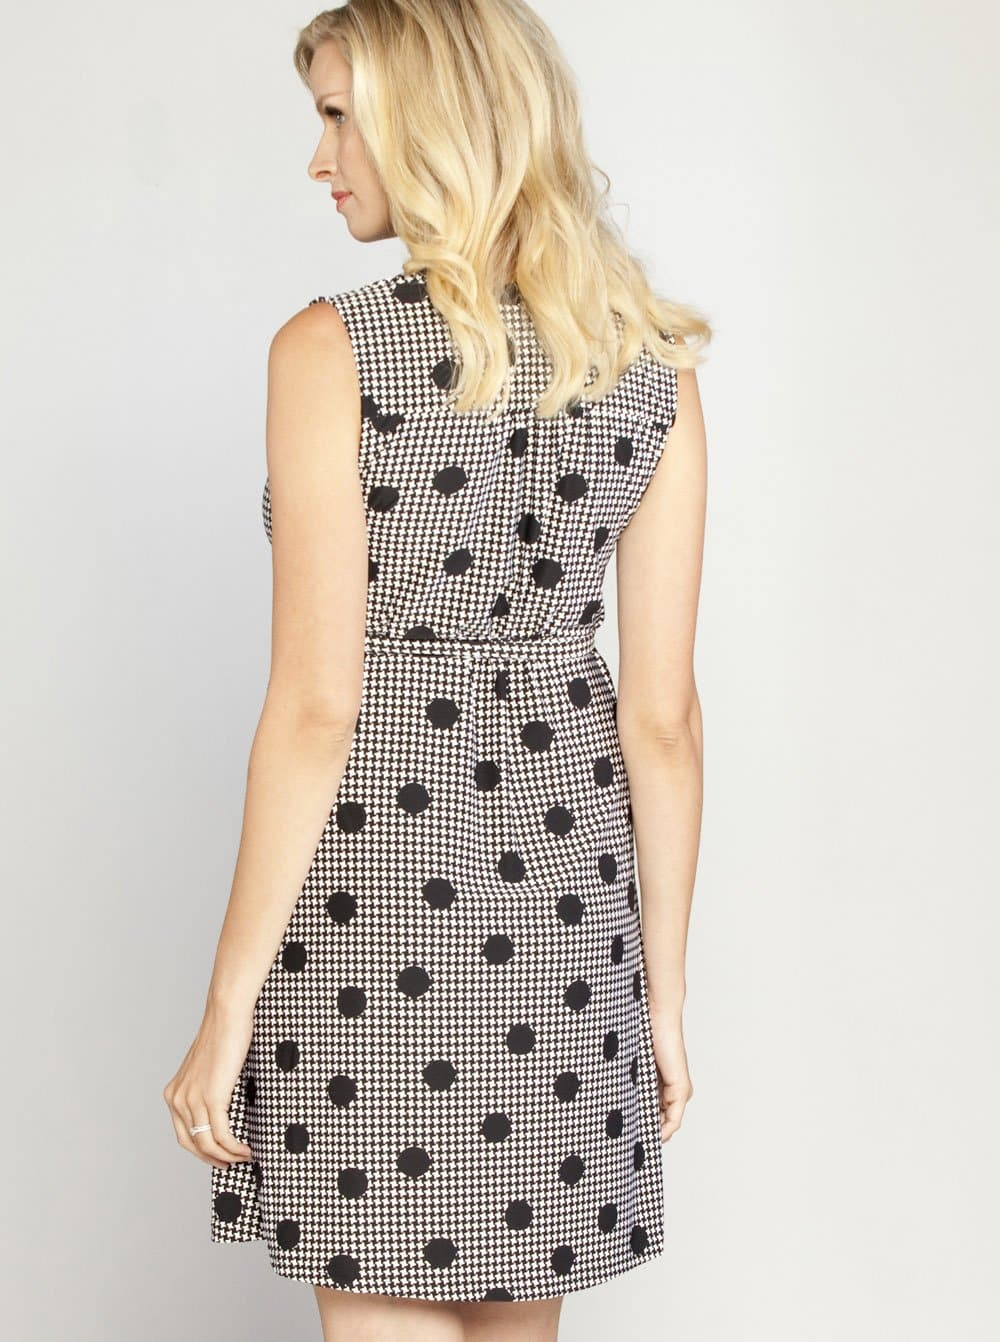 Maternity Classic Sleeveless Wrap Nursing Dress - Houndstooth Print - Angel Maternity - Maternity clothes - shop online